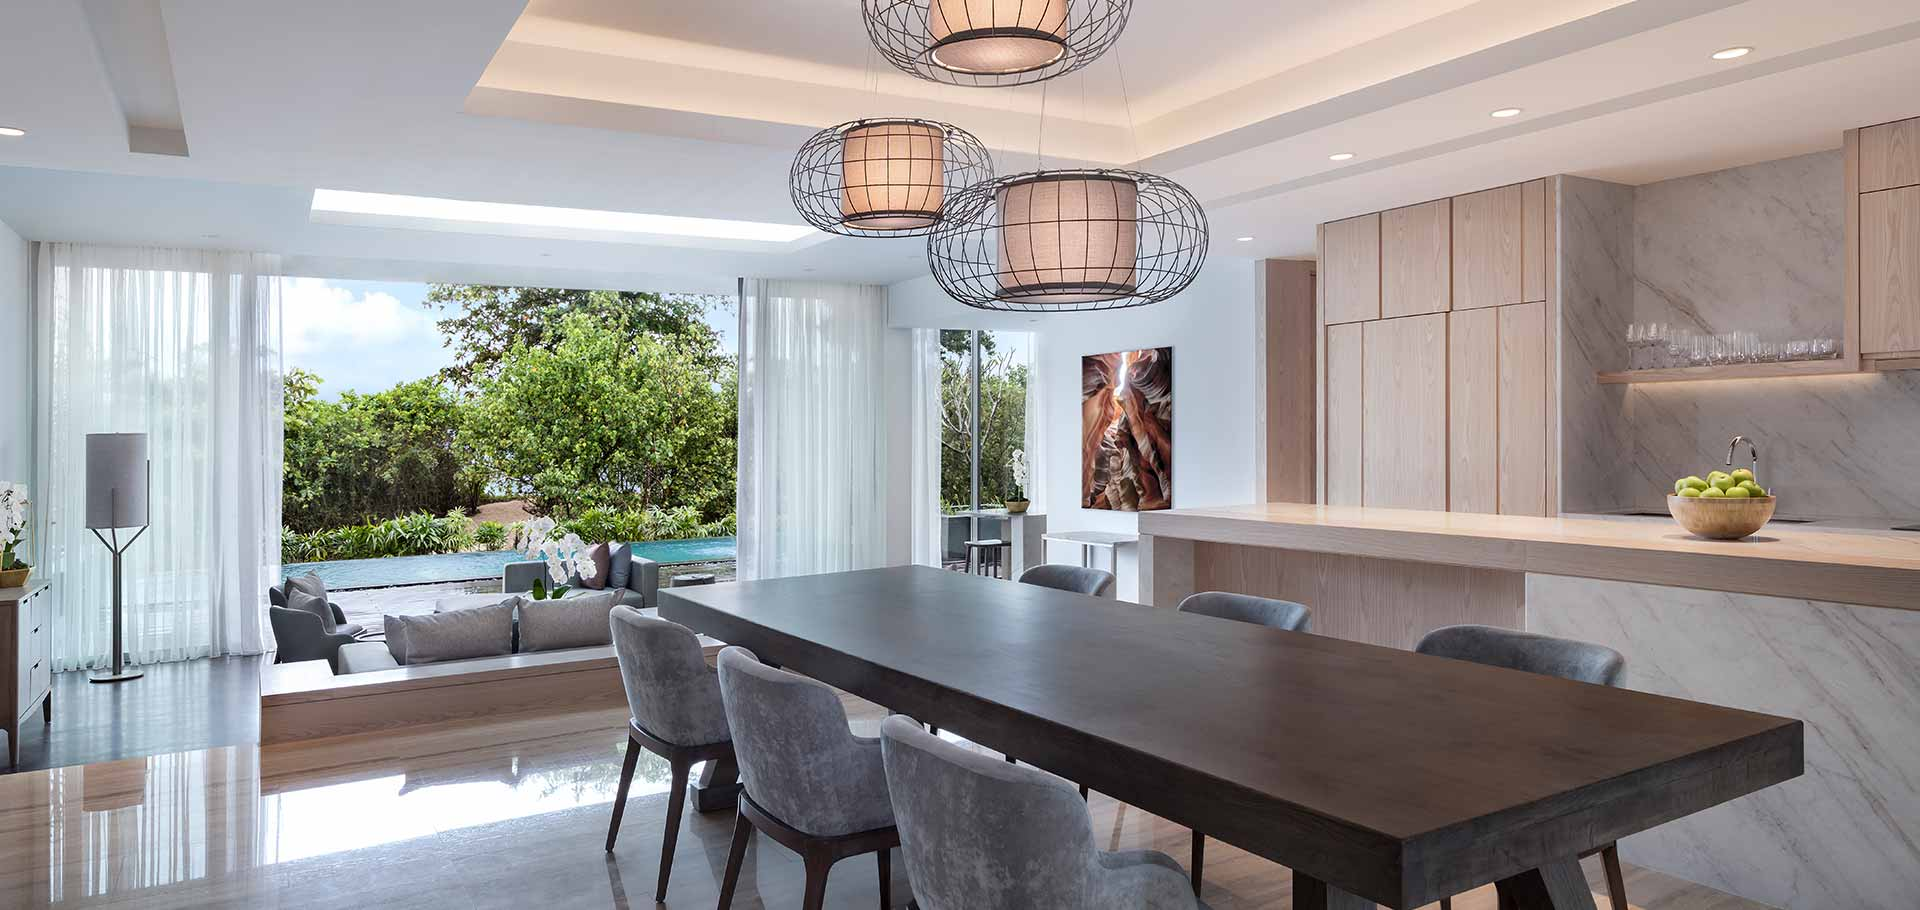 Anantara_Desaru_Coast_Residences_Dining_Room_1-2